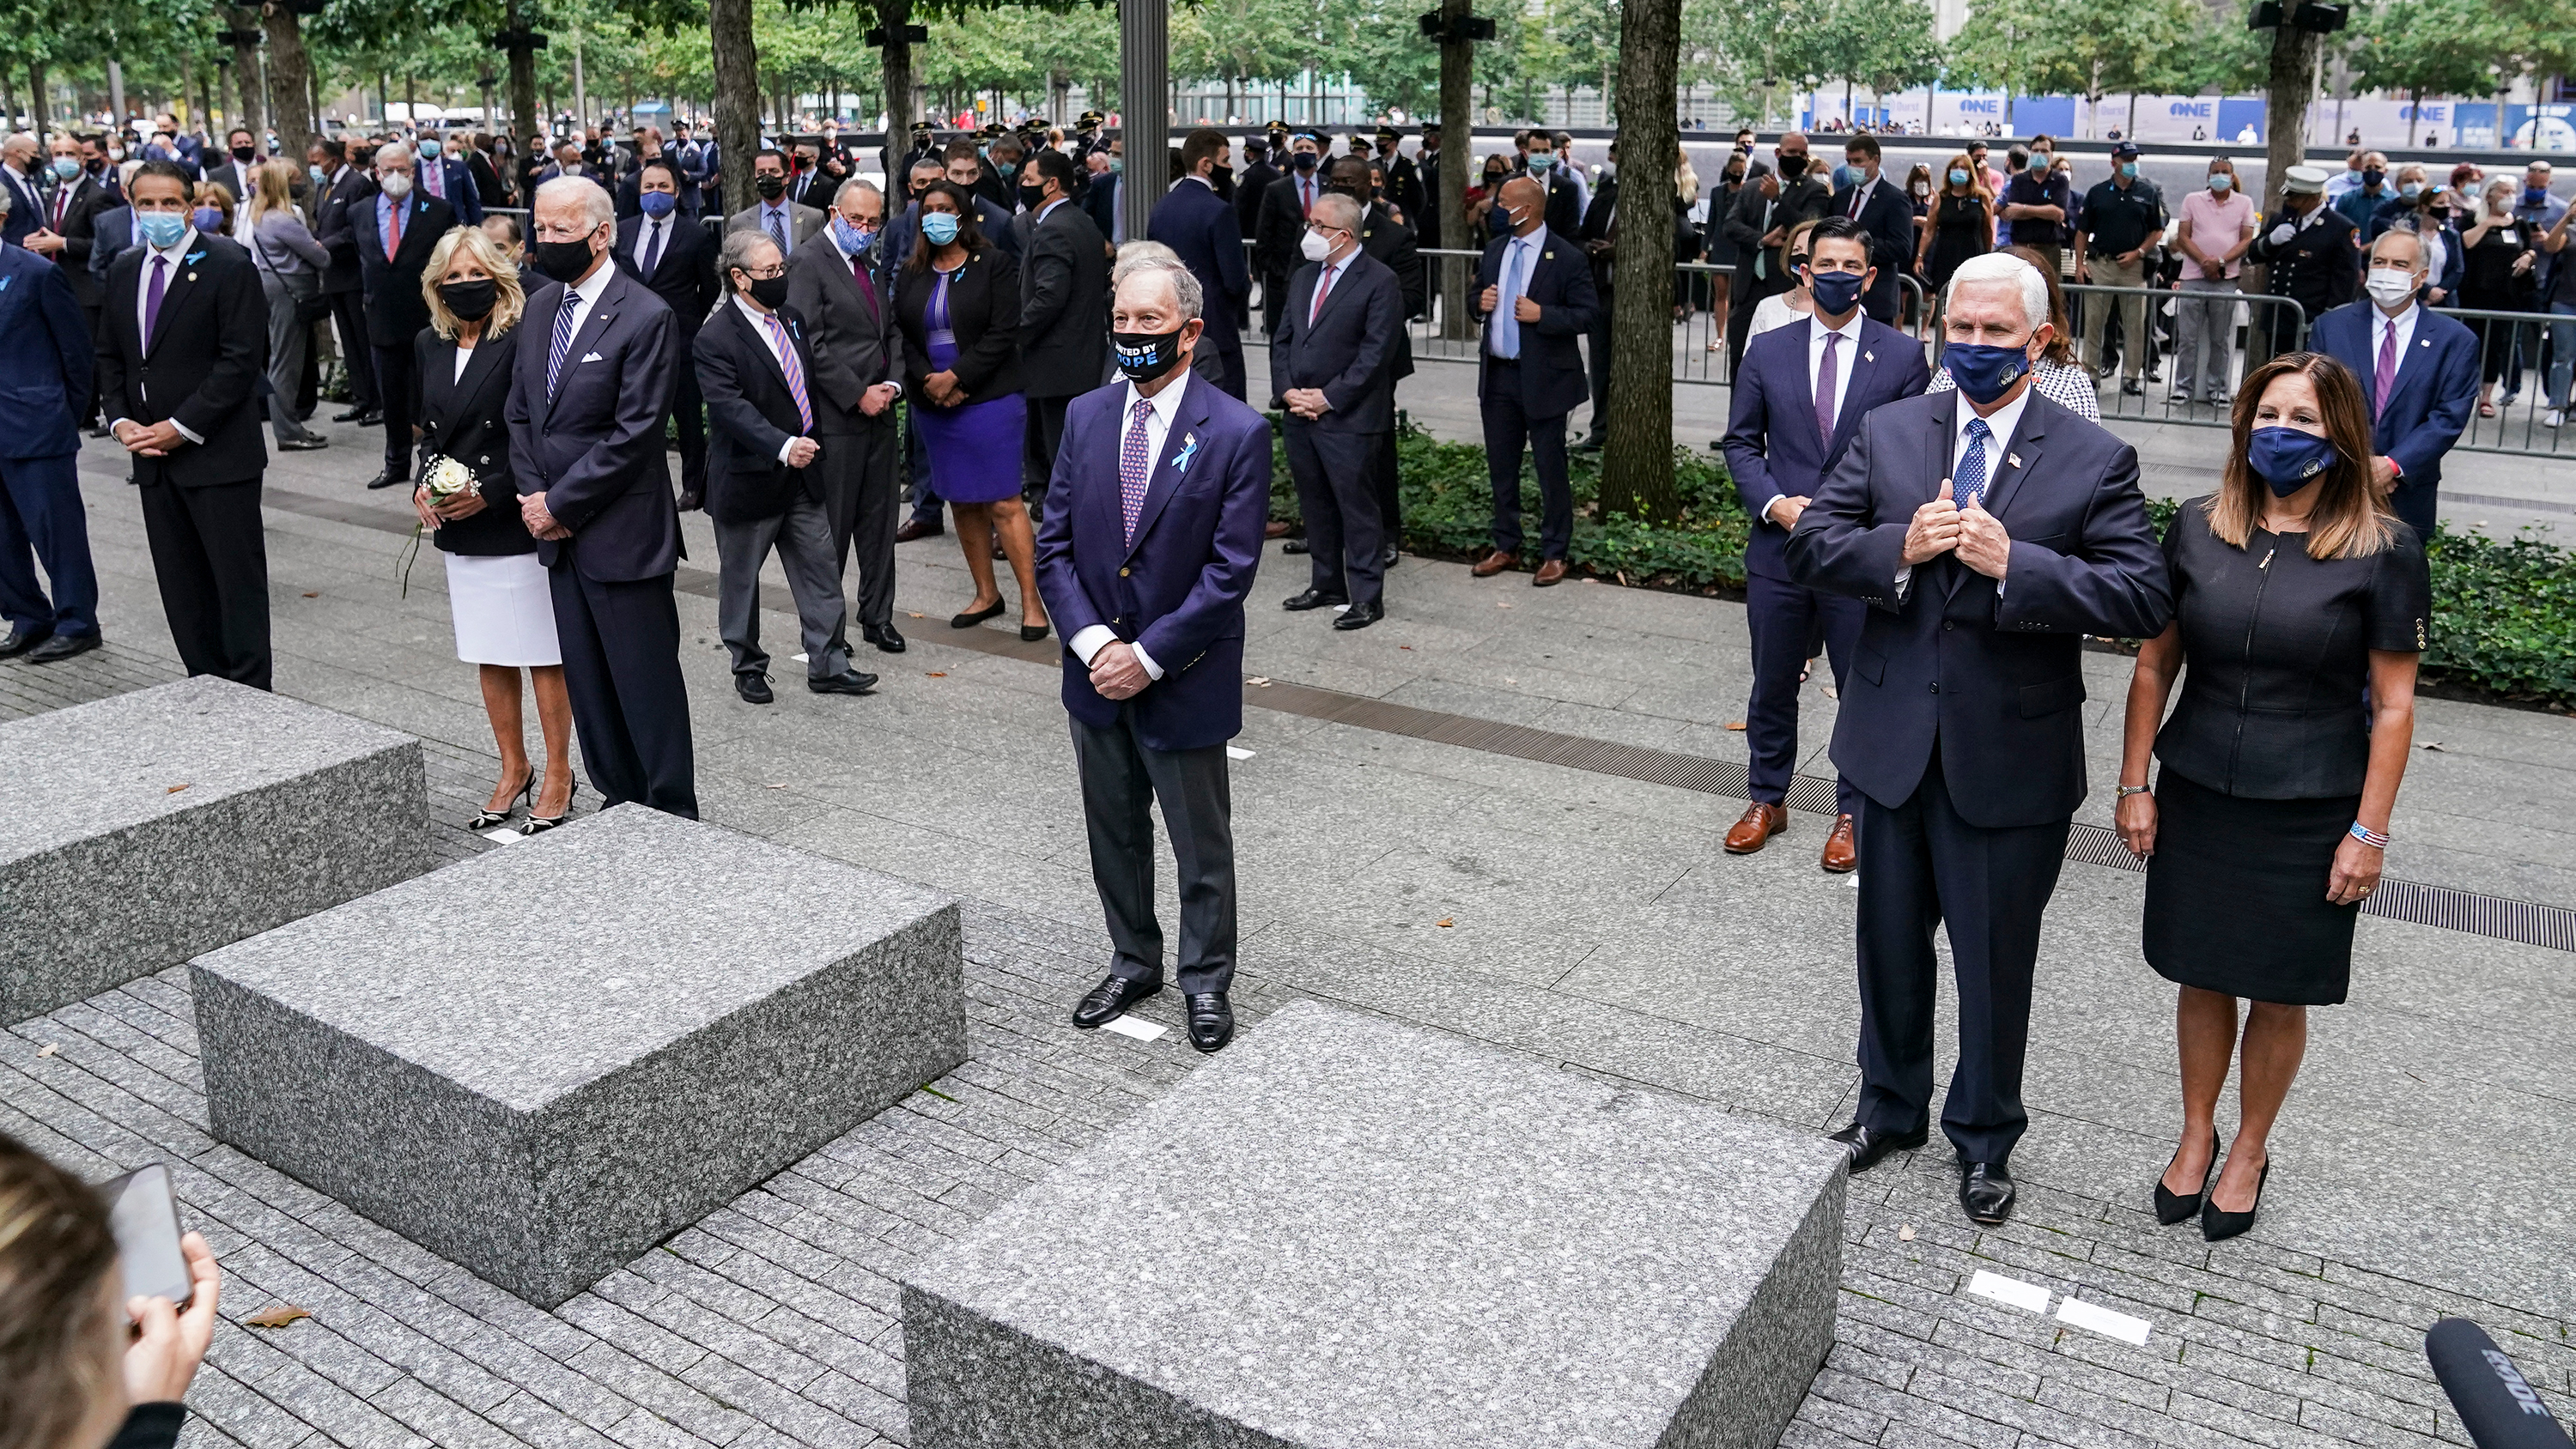 Left to right: New York Gov. Andrew Cuomo, Democratic presidential candidate Joe Biden and h, former New York Mayor Mike Bloomberg, and Vice President Mike Pence and Second Lady Karen Pence stand during the national anthem at the National September 11 Memorial and Museum, Friday, Sept. 11, 2020, in New York. Americans will commemorate 9/11 with tributes that have been altered by coronavirus precautions and woven into the presidential campaign. (AP Photo/John Minchillo)